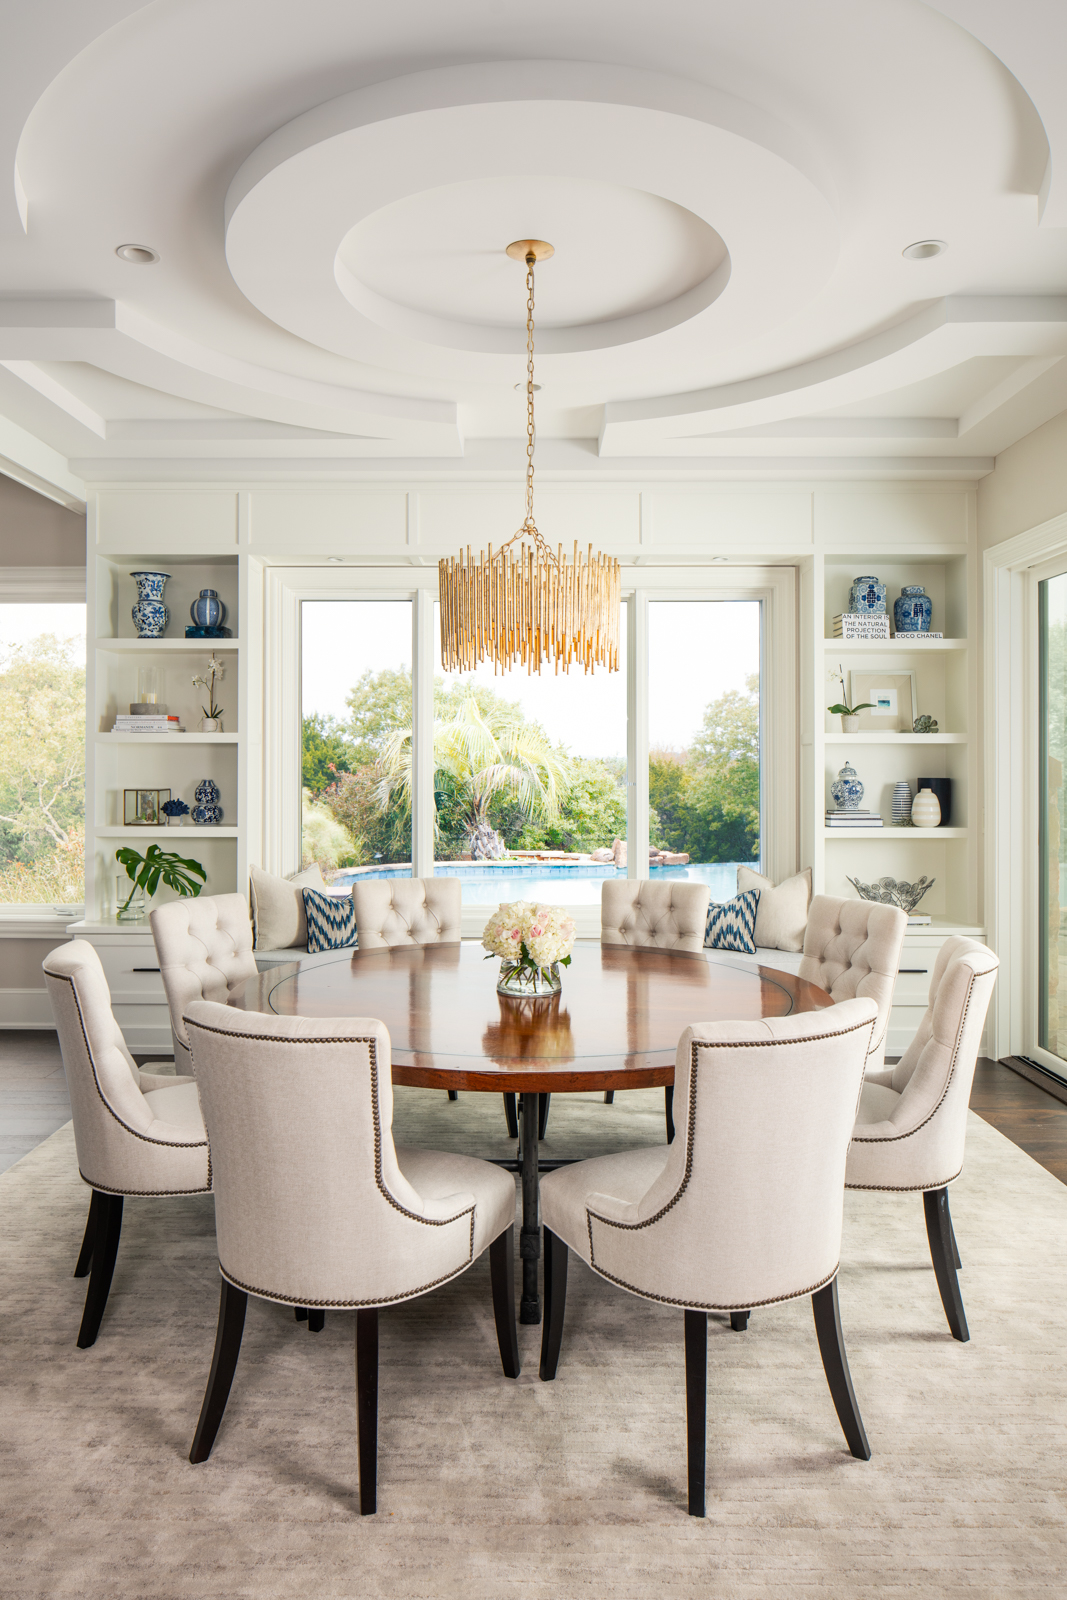 Robert Gomez - Austin Texas Editorial, Food & Beverage, Interiors Photographer | Interiors | 21